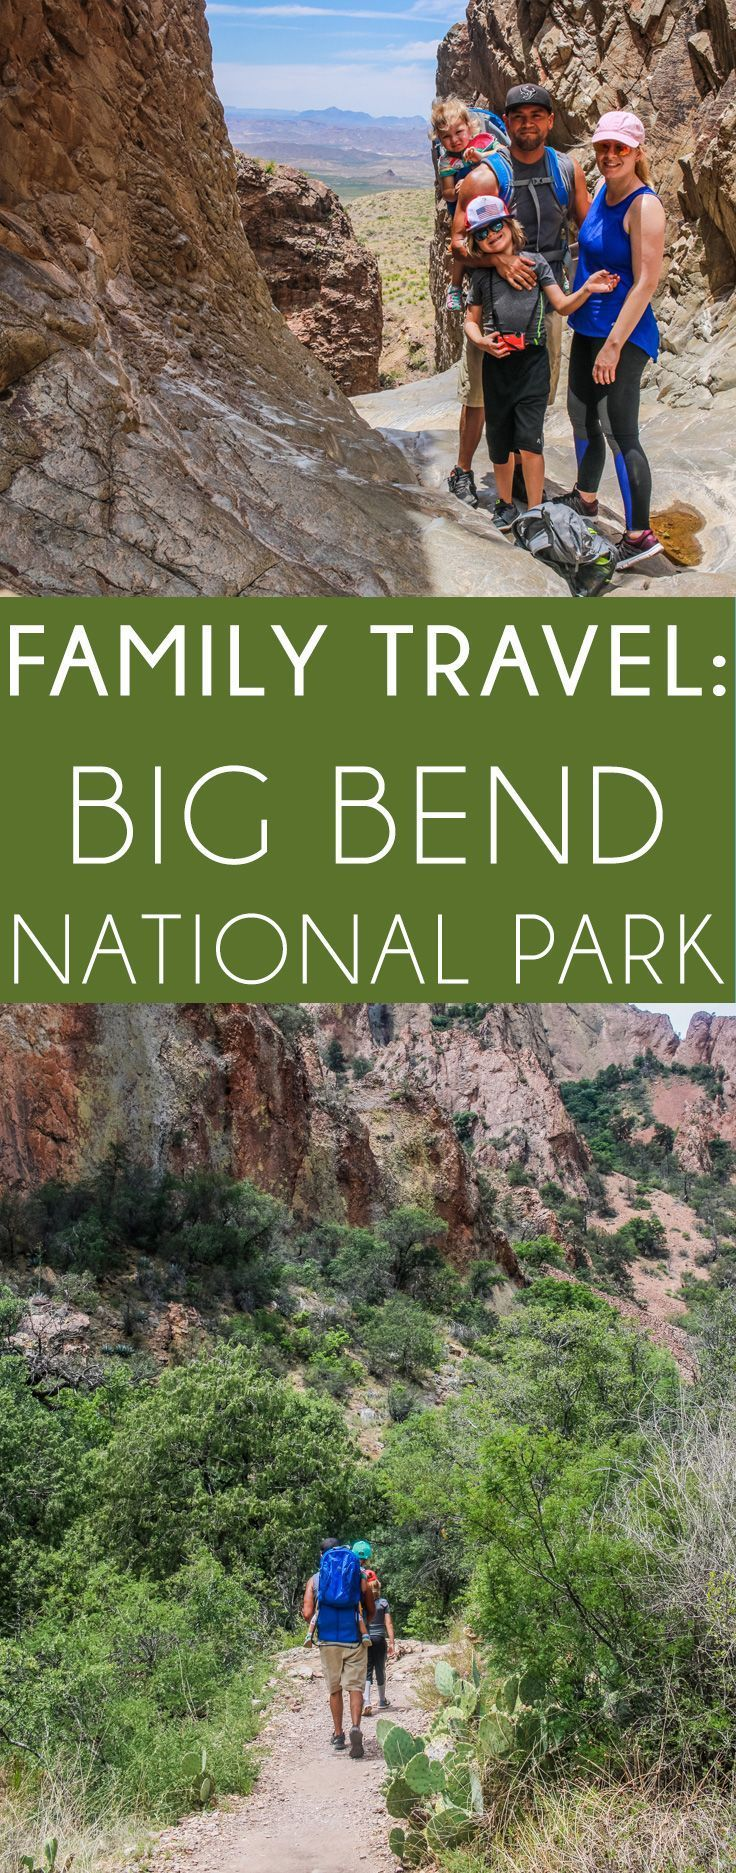 Big Bend National Park in Texas Trip! Our family travel to Big Bend; Everything from where we stayed, what we hiked, what we brought to eat. Our trip to Big Bend with a toddler & kid. A realistic & family friendly guide for Big Bend National Park & wha